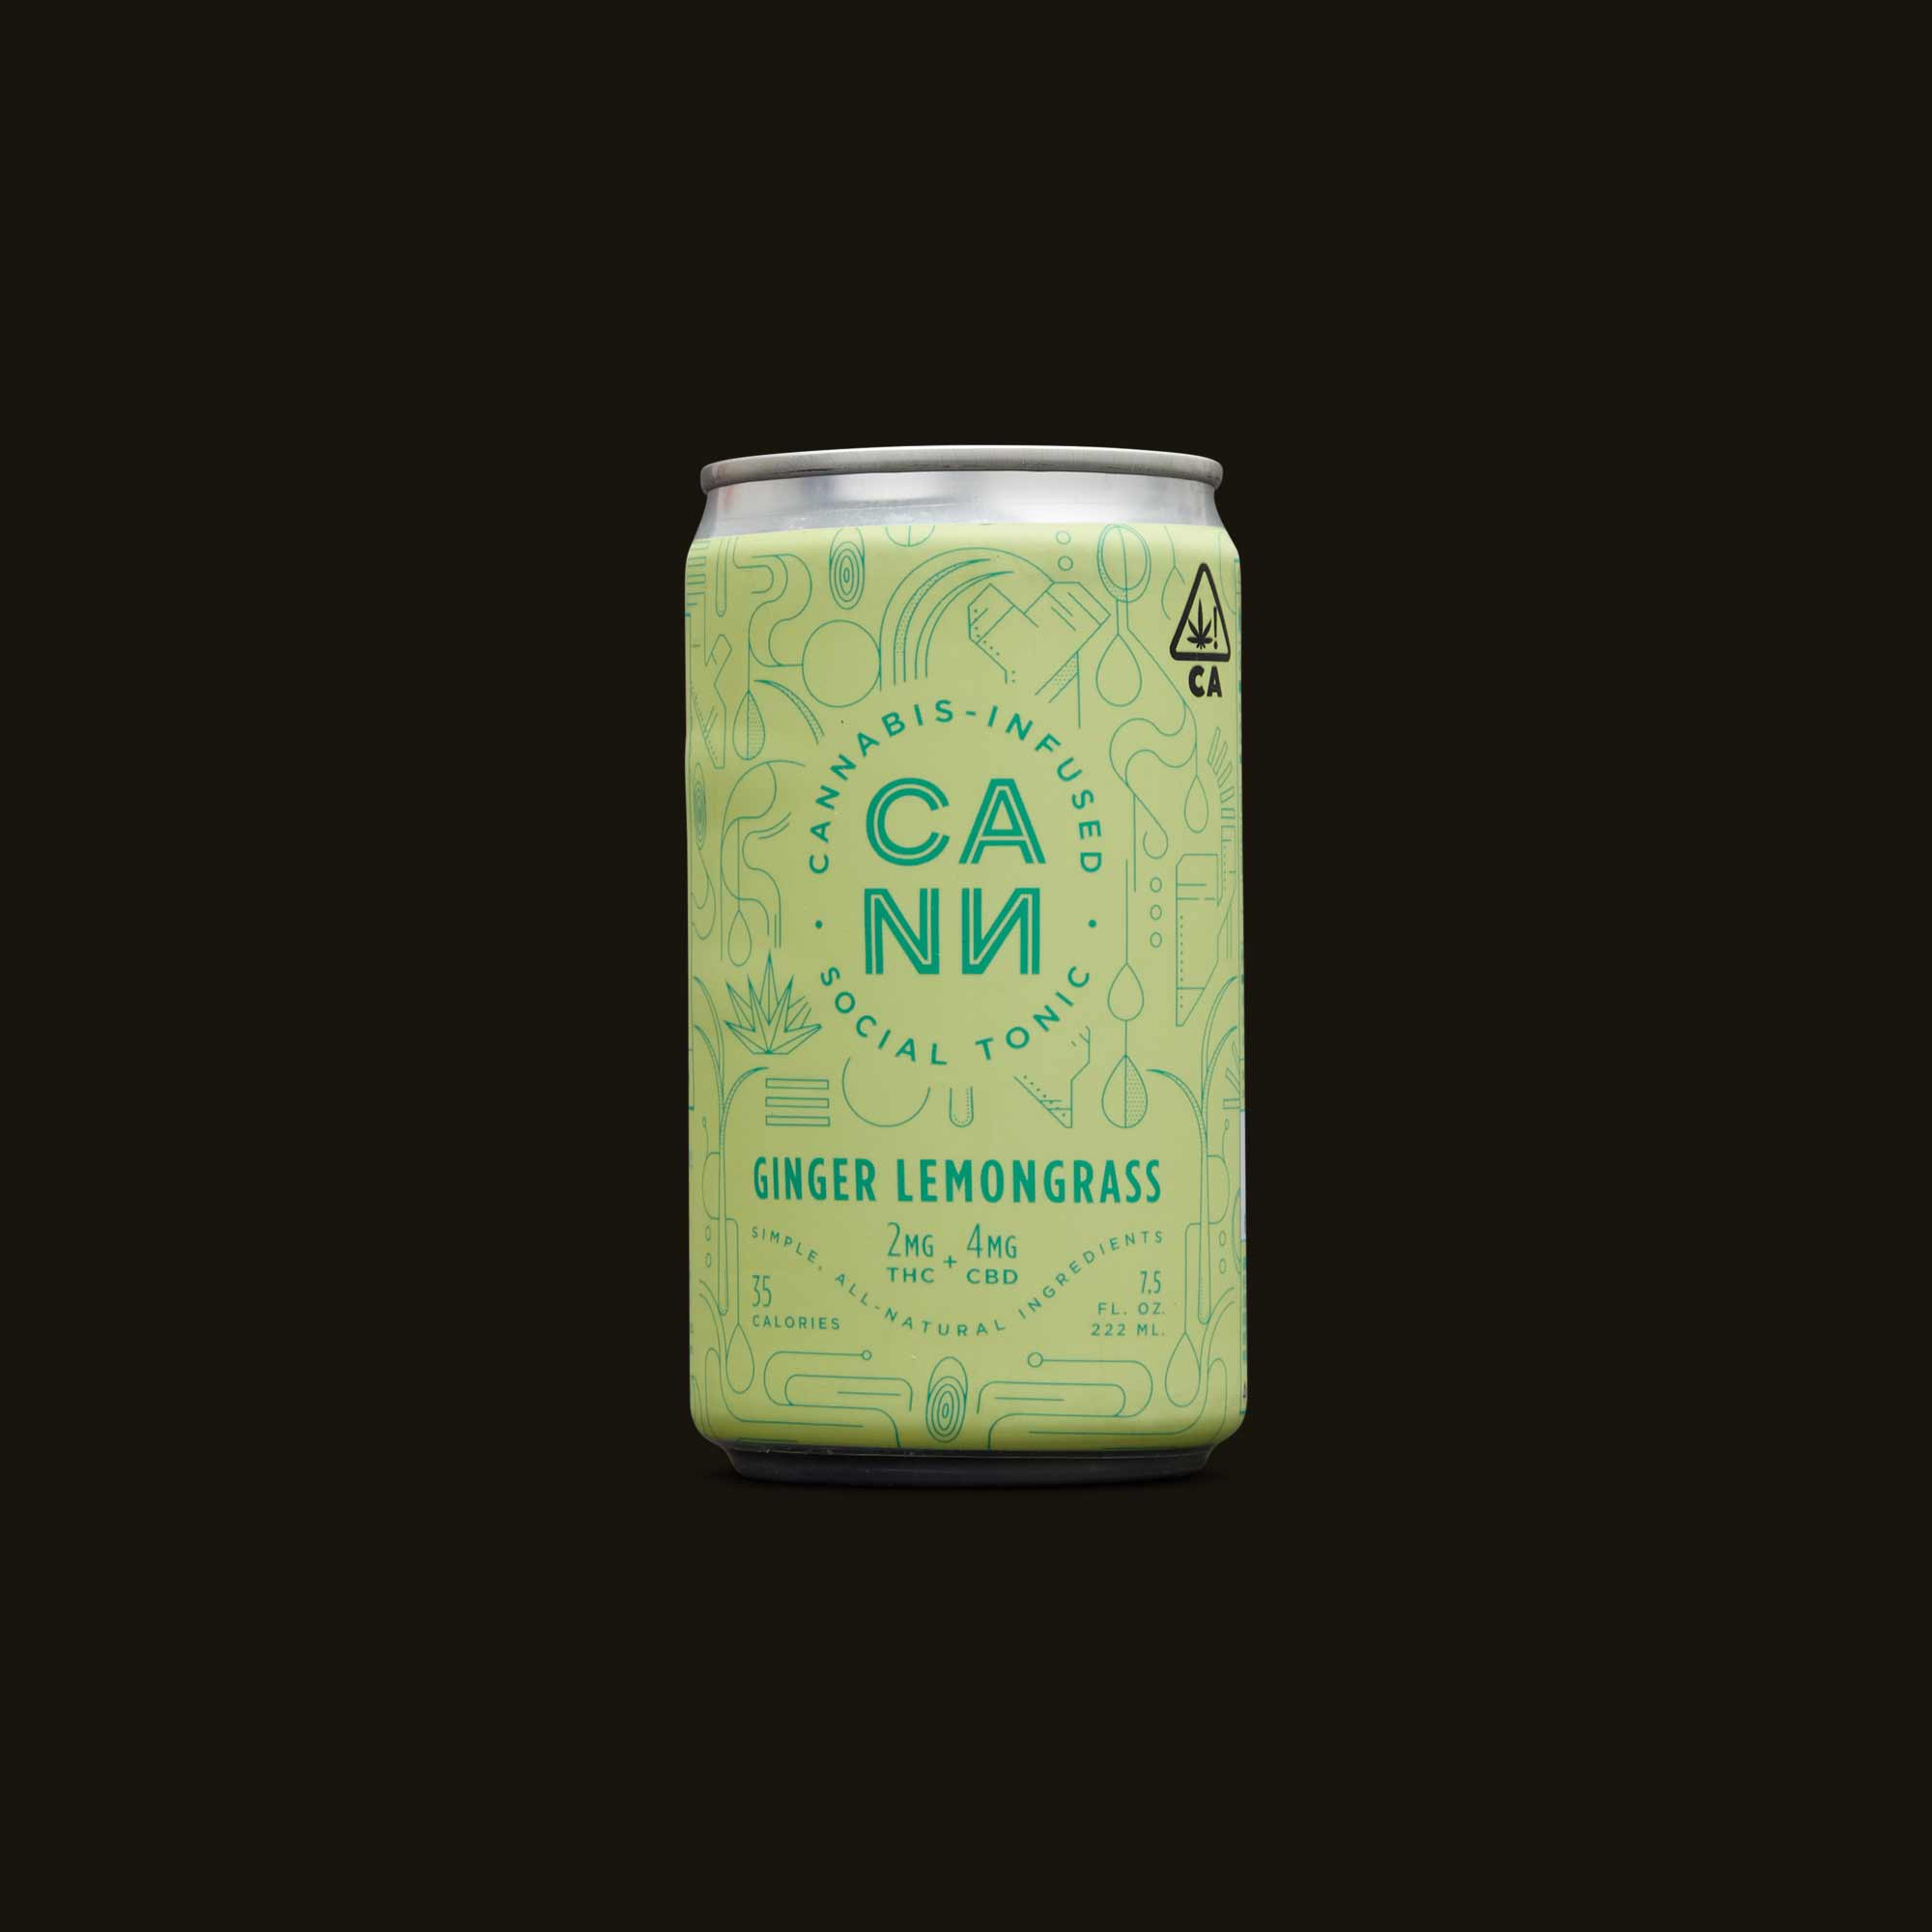 Cann Ginger Lemongrass Social Tonic